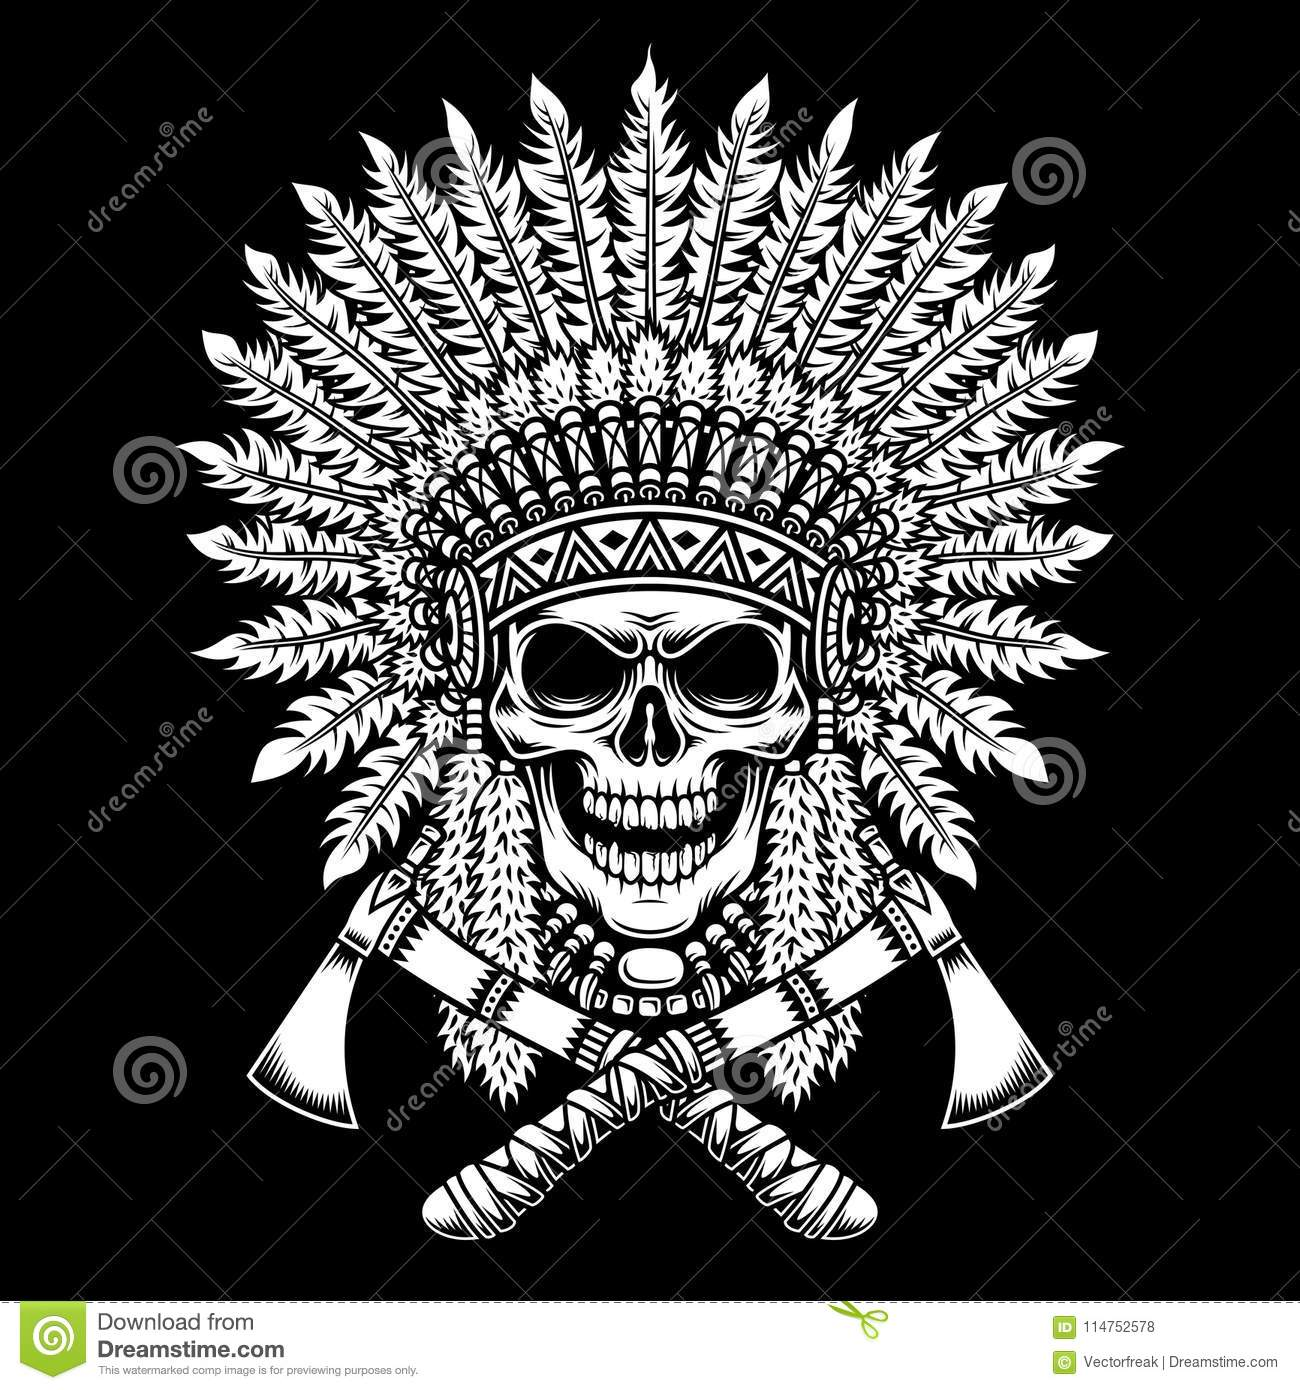 1be5ffa40 indian, chief, skull, skeleton, bones, death, head, headdress, indian  skull, tomahawk, tattoo, tribal, traditional, feather, axe, culture, native,  ...